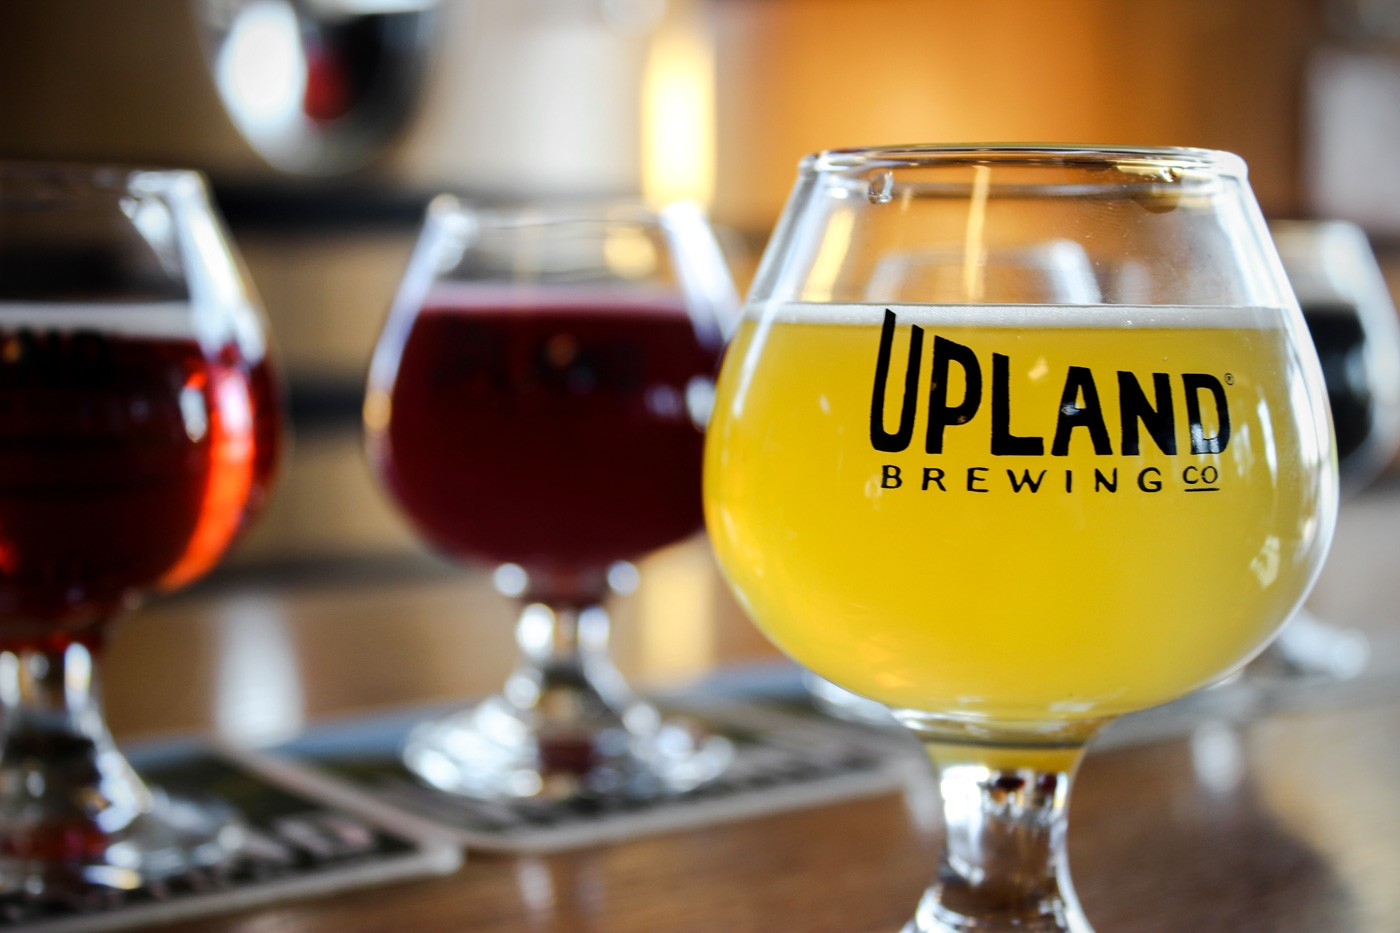 about - upland brewing co.